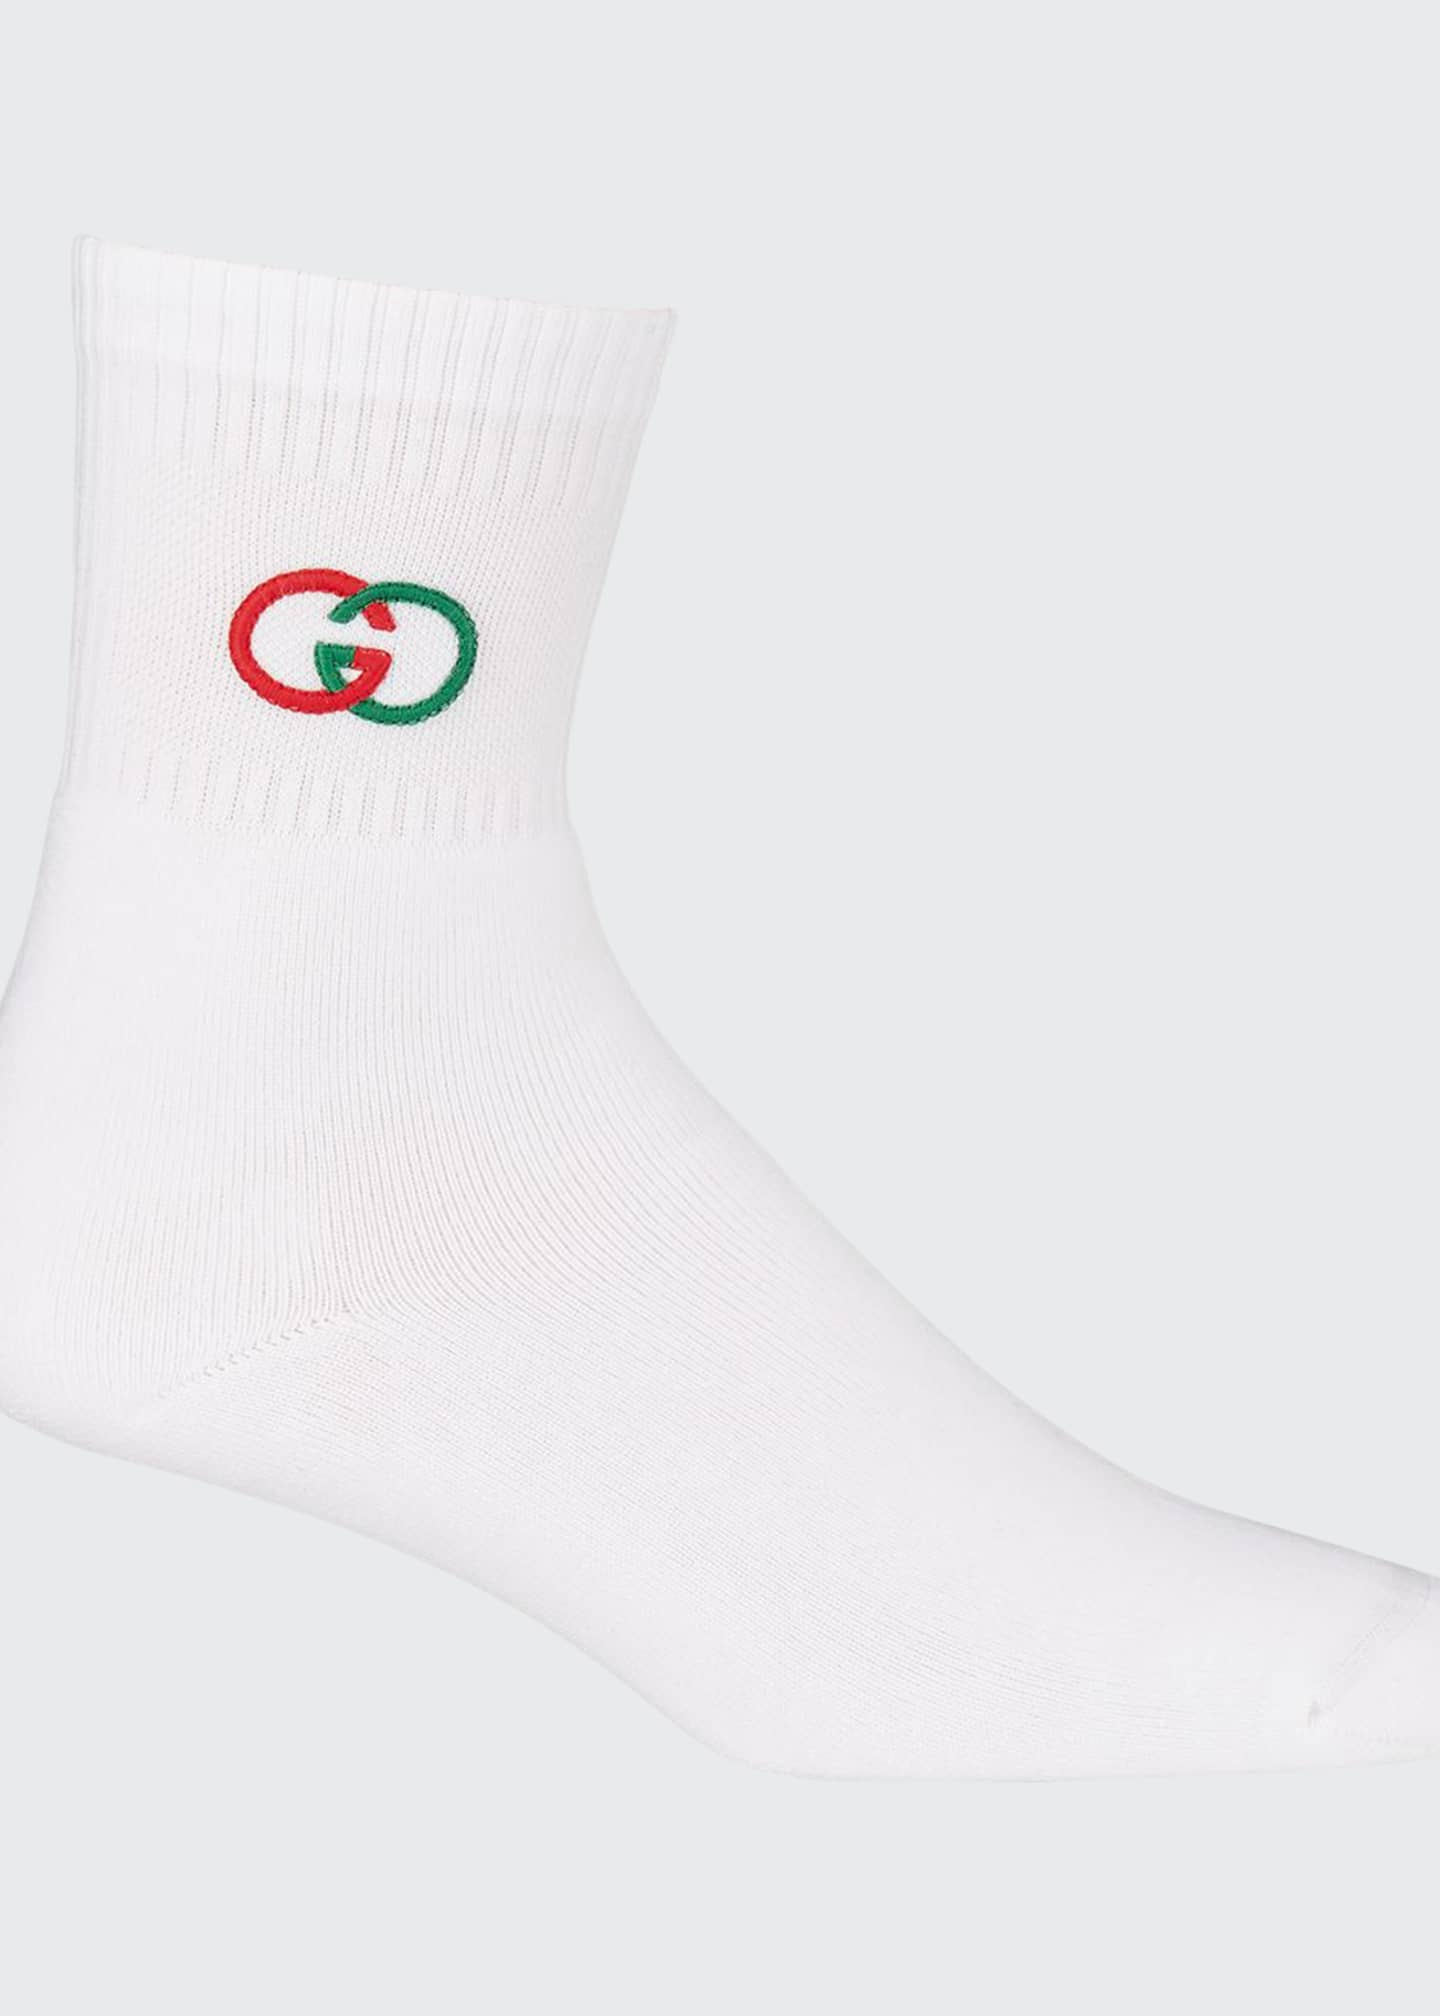 Gucci Men's GG Pong Tube Socks